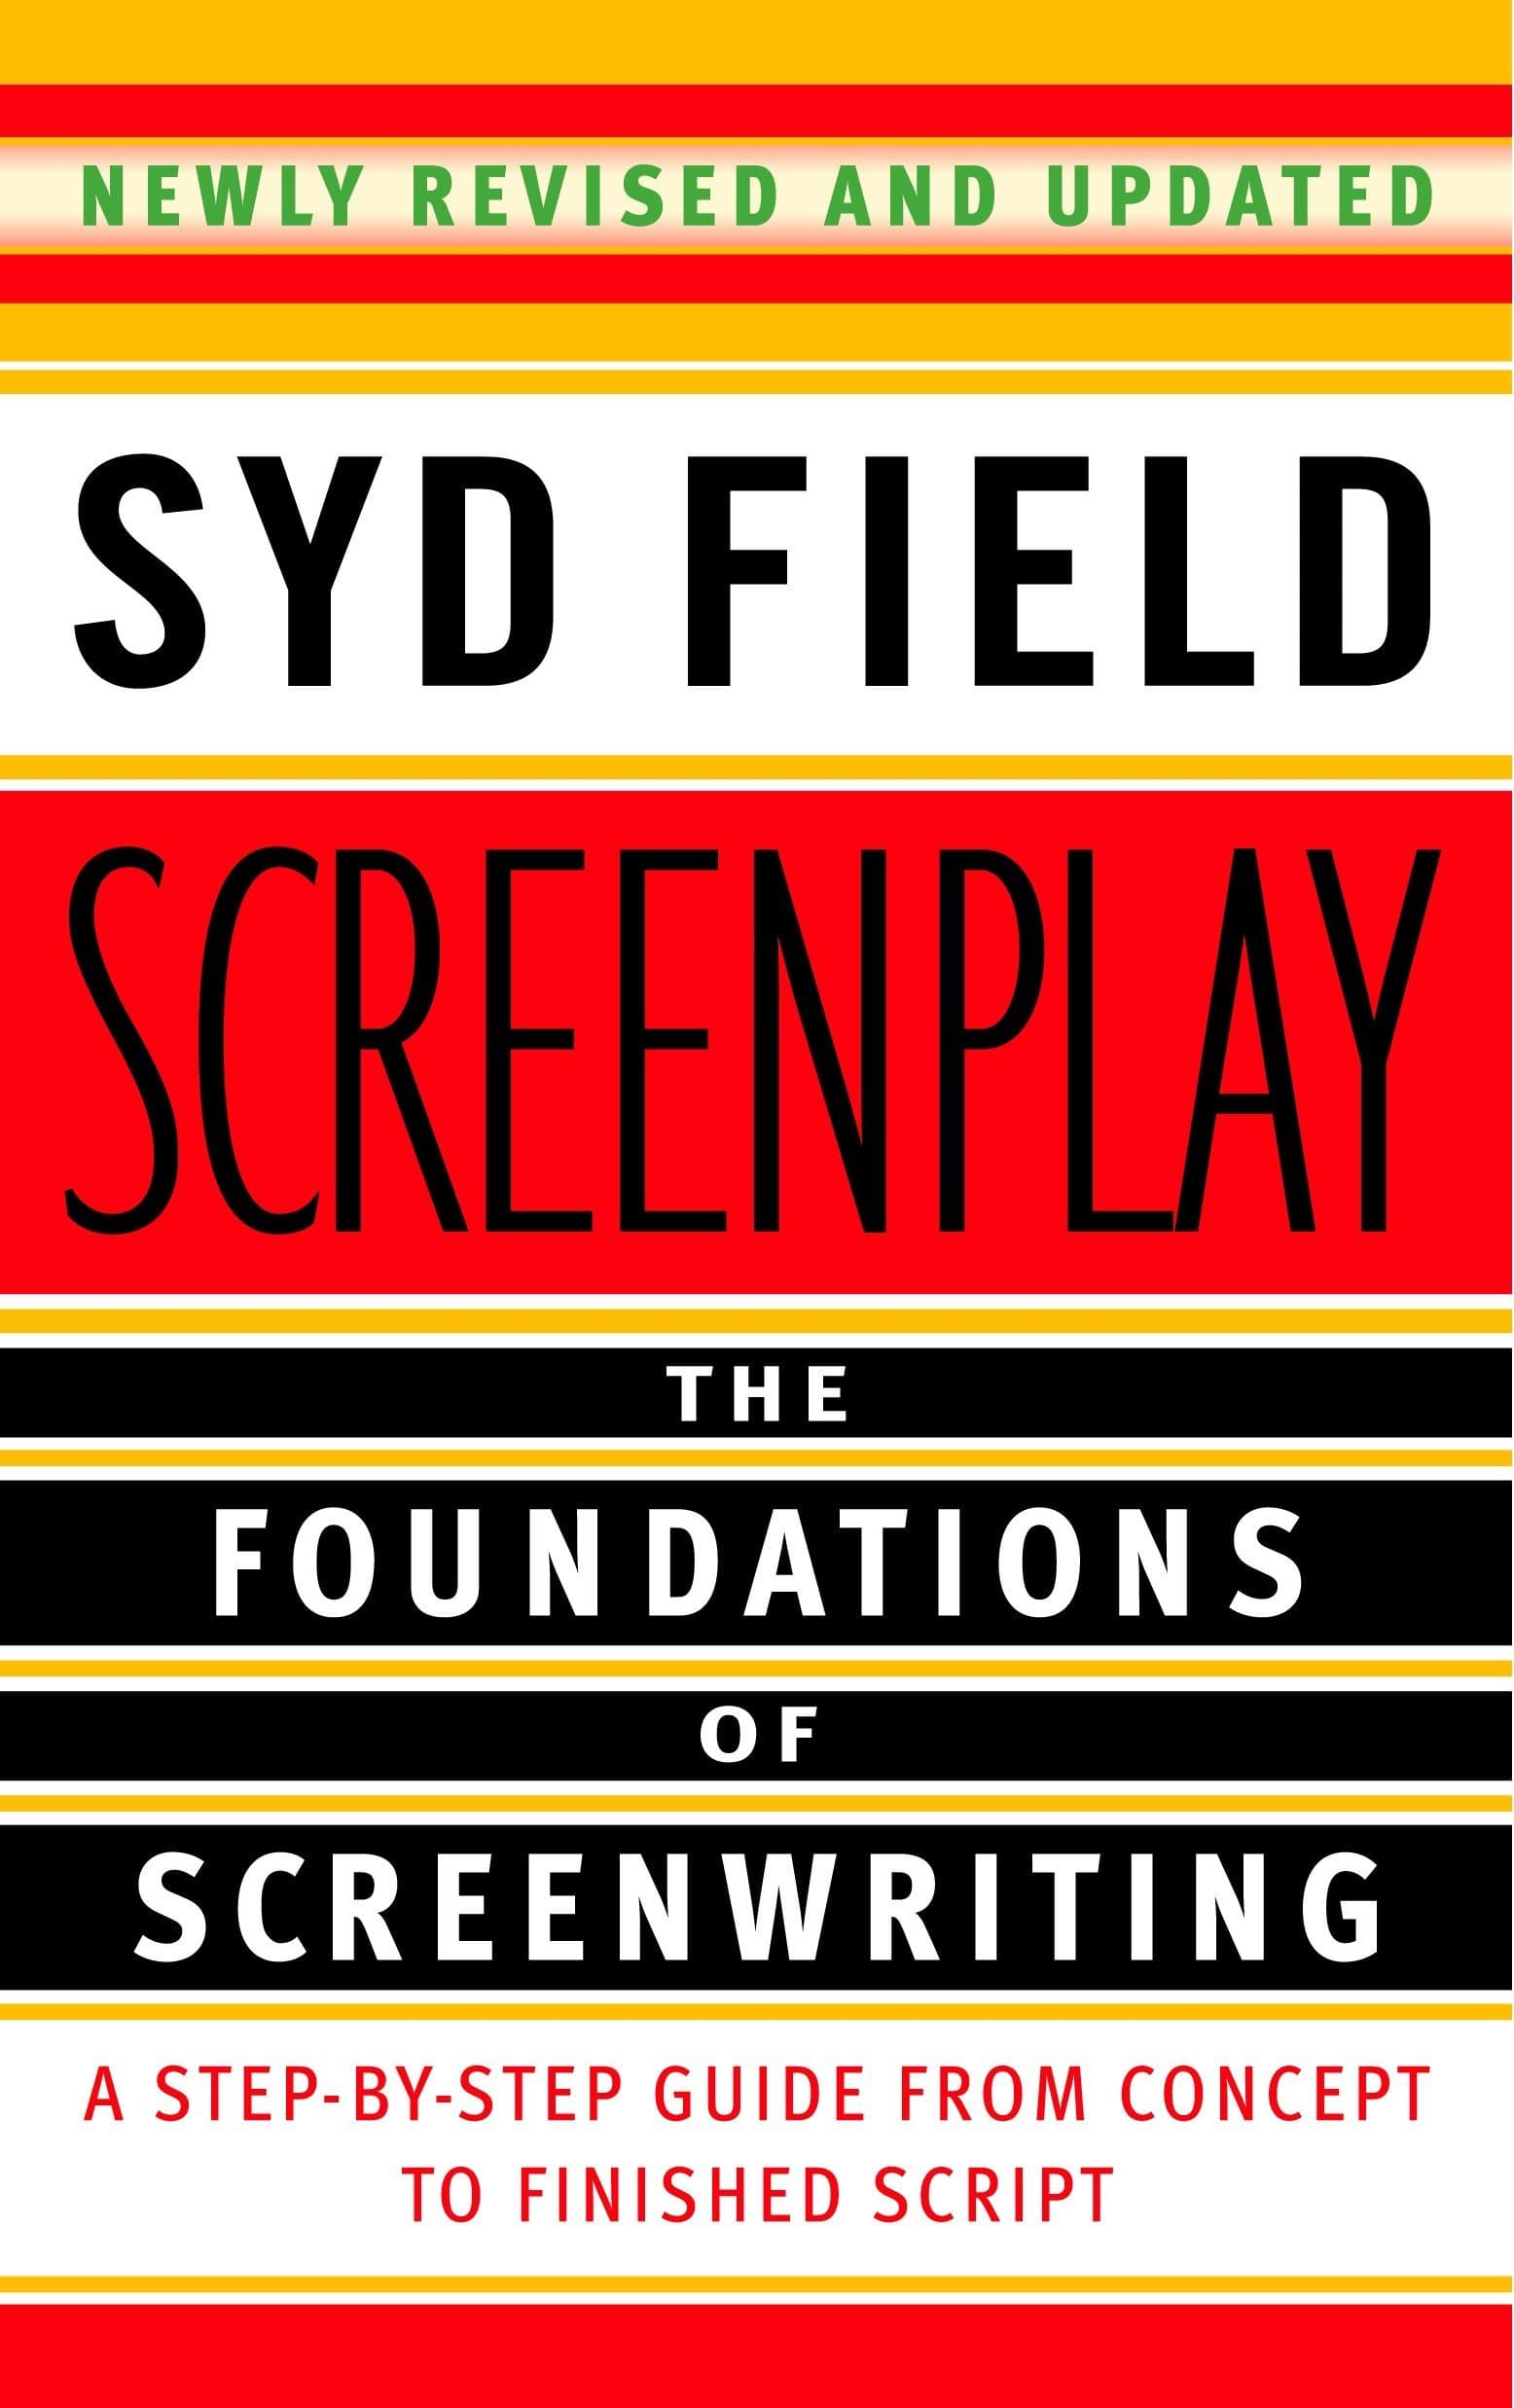 The Best Screenwriting Books for Screenwriters - Syd Field The Foundations of Screenwriting-min